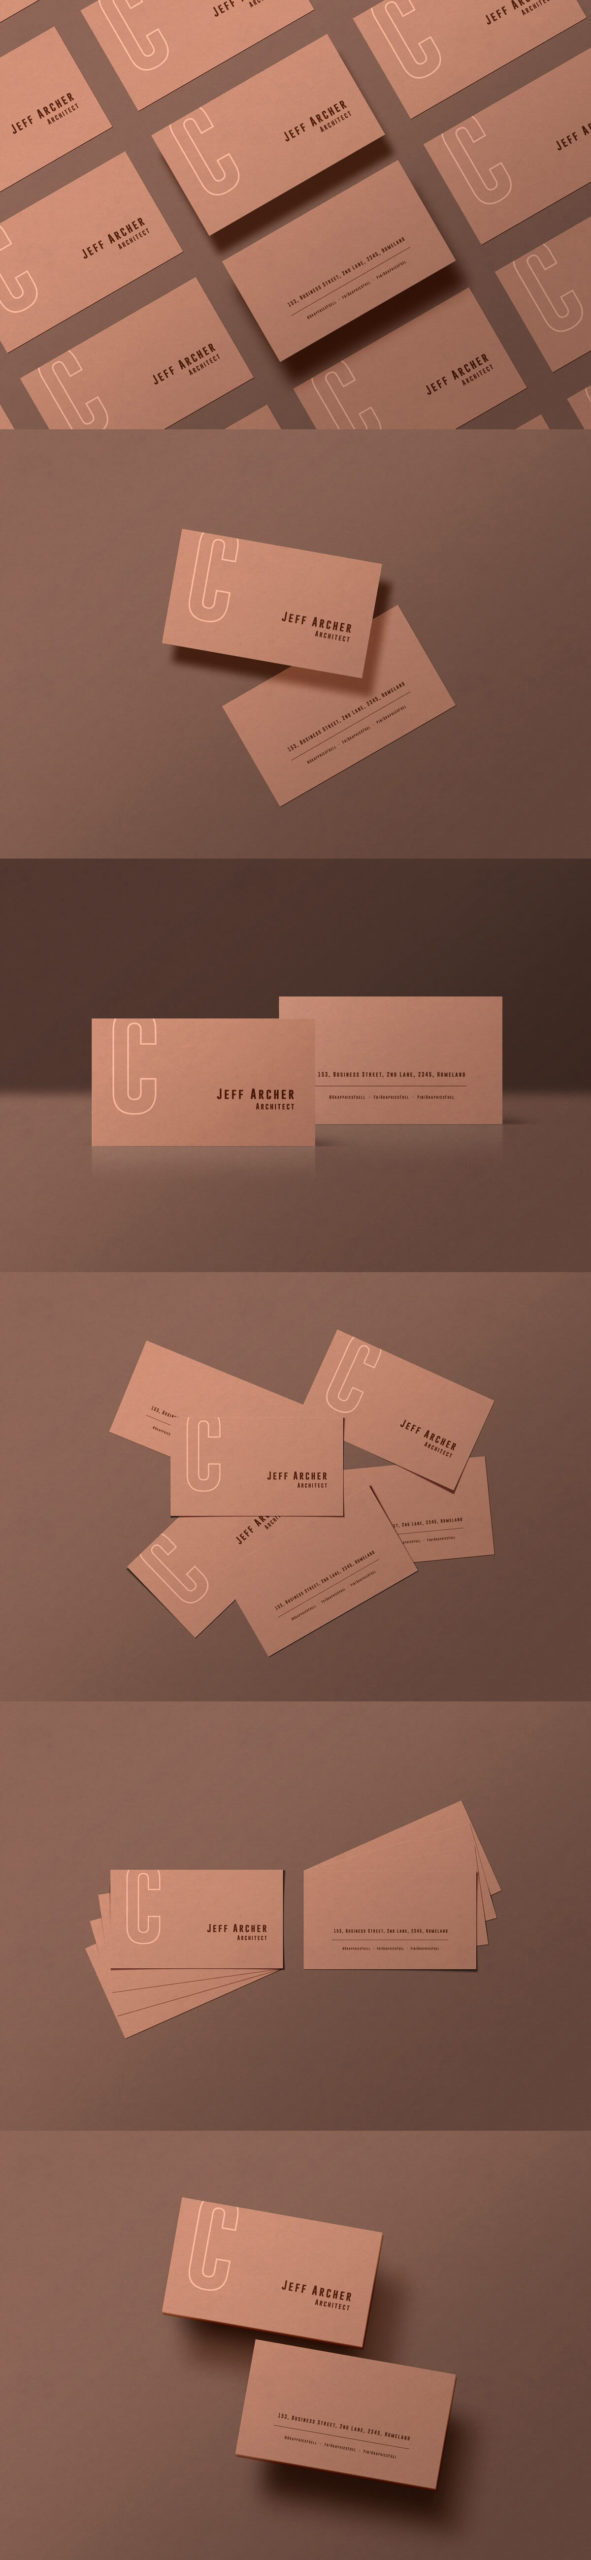 Free Minimalist Business Cards Mockup PSD Templates